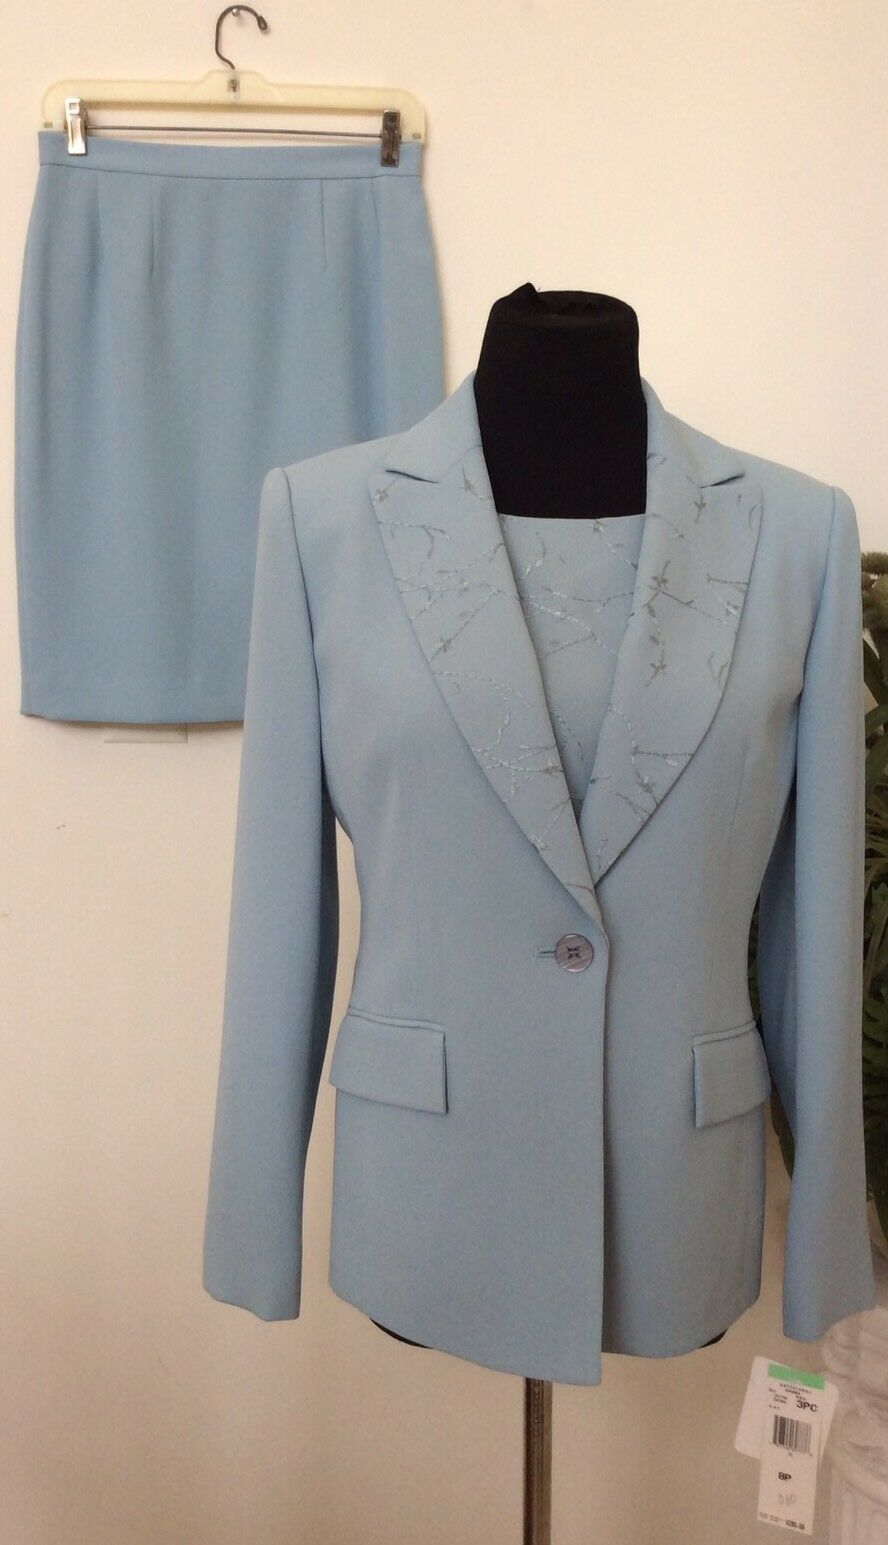 NWT Jones New York bluee 100% 100% 100% Polyester Lacy 3 Piece Skirt Suit Size 8P Ret. 280 99ff9a